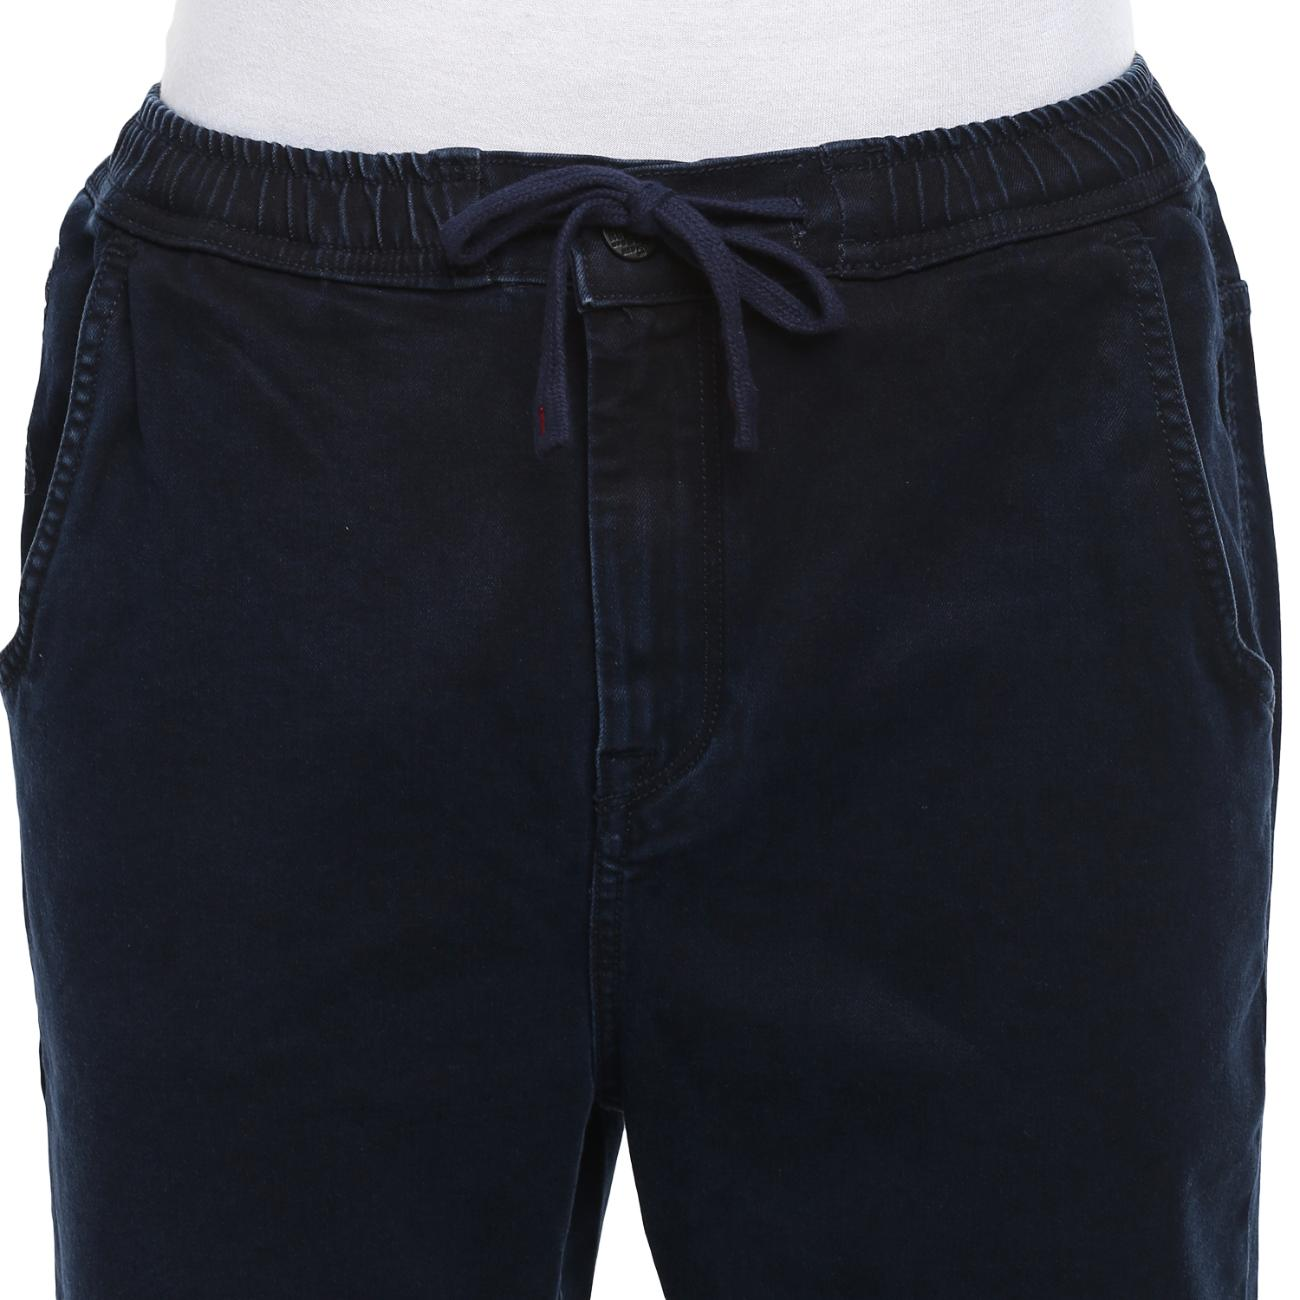 Shop Blue Narrow Jeans at Red Chief